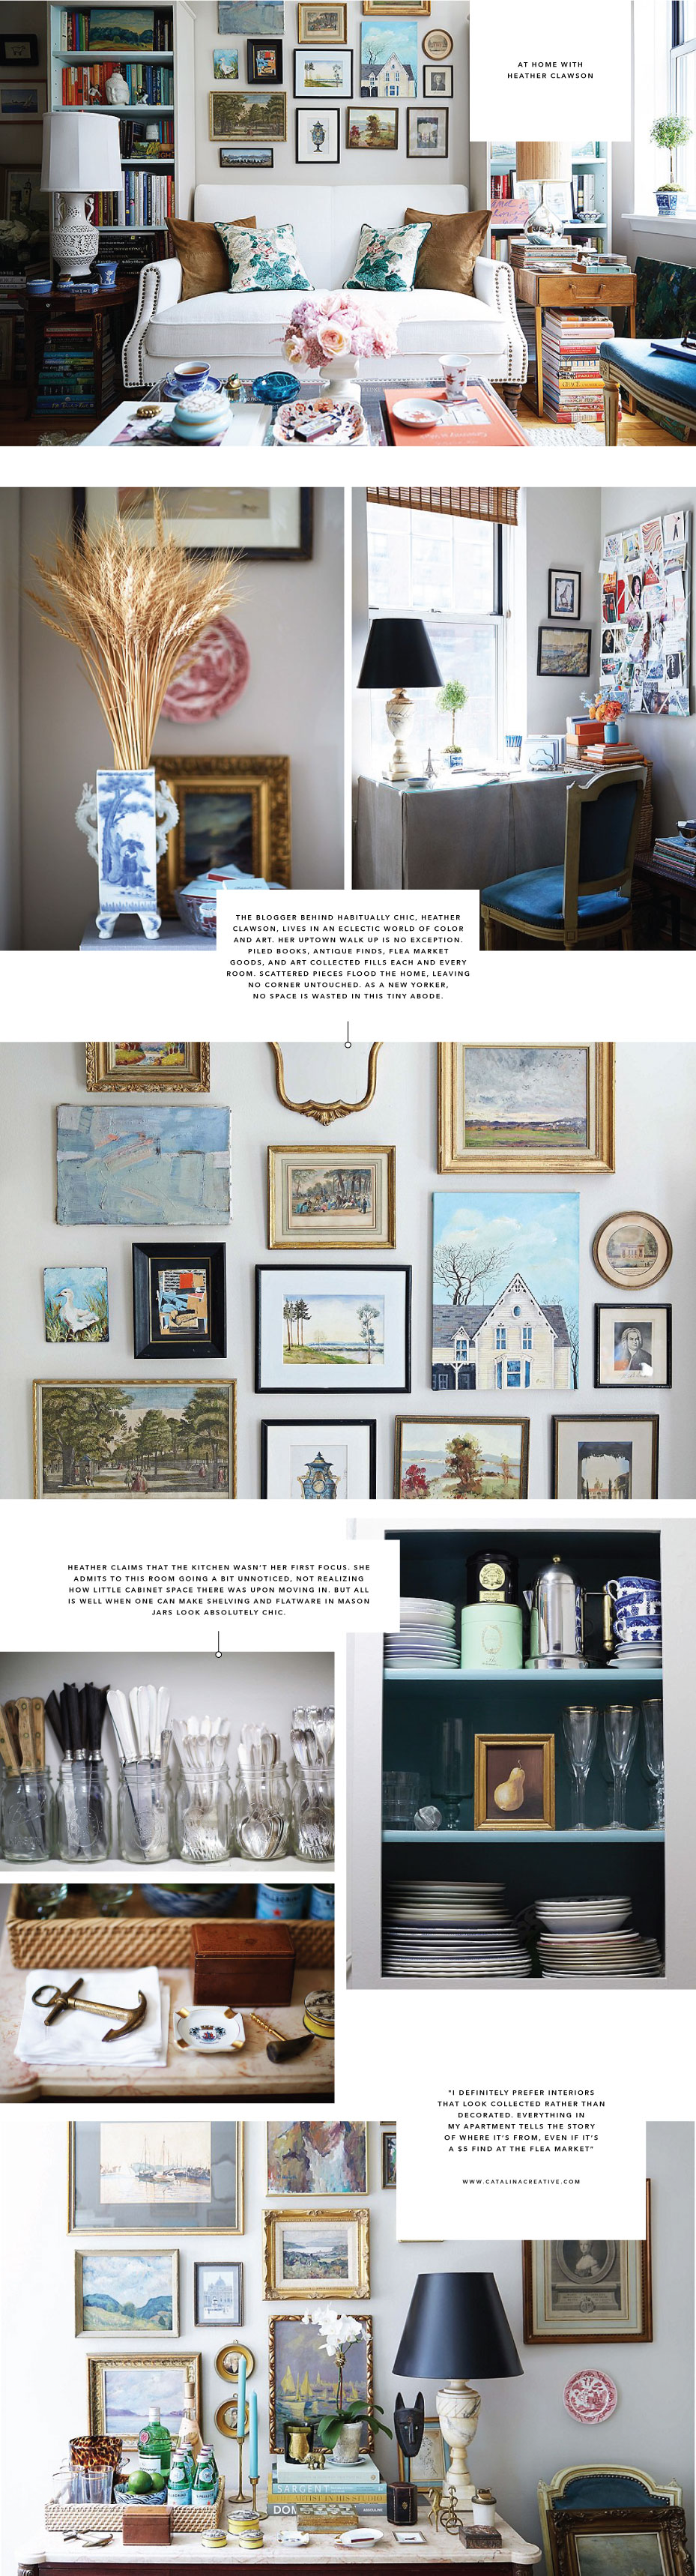 At Home with Heather Clawson on Catalina Creative